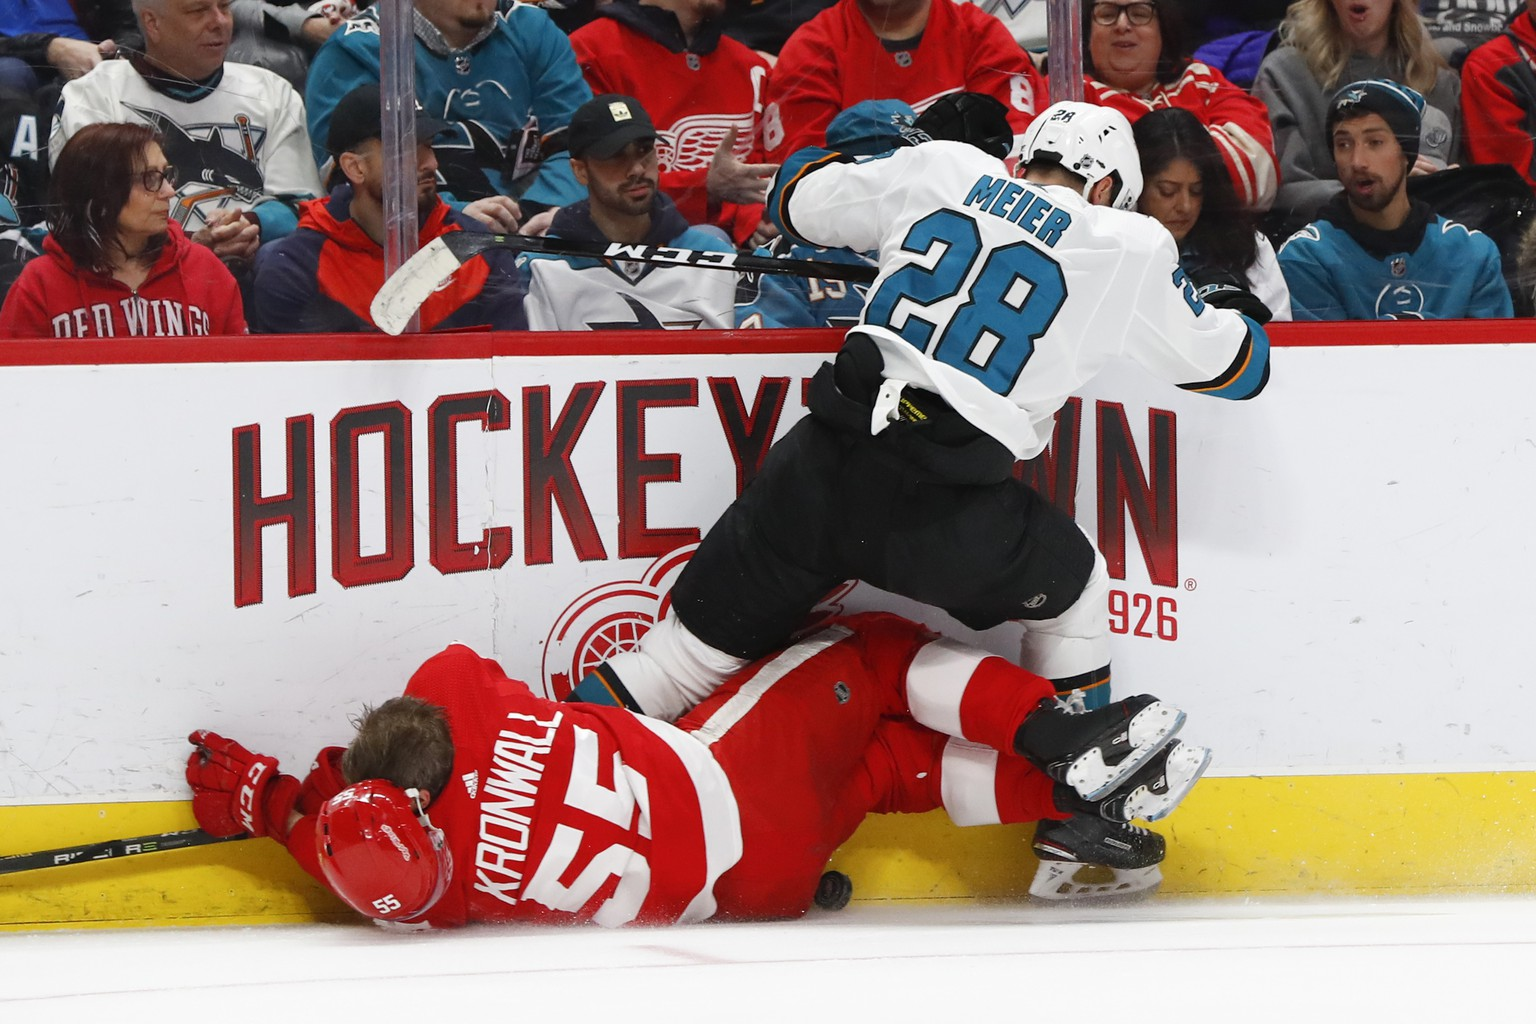 San Jose Sharks right wing Timo Meier (28) checks Detroit Red Wings defenseman Niklas Kronwall (55) in the first period of an NHL hockey game Sunday, Feb. 24, 2019, in Detroit. (AP Photo/Paul Sancya)